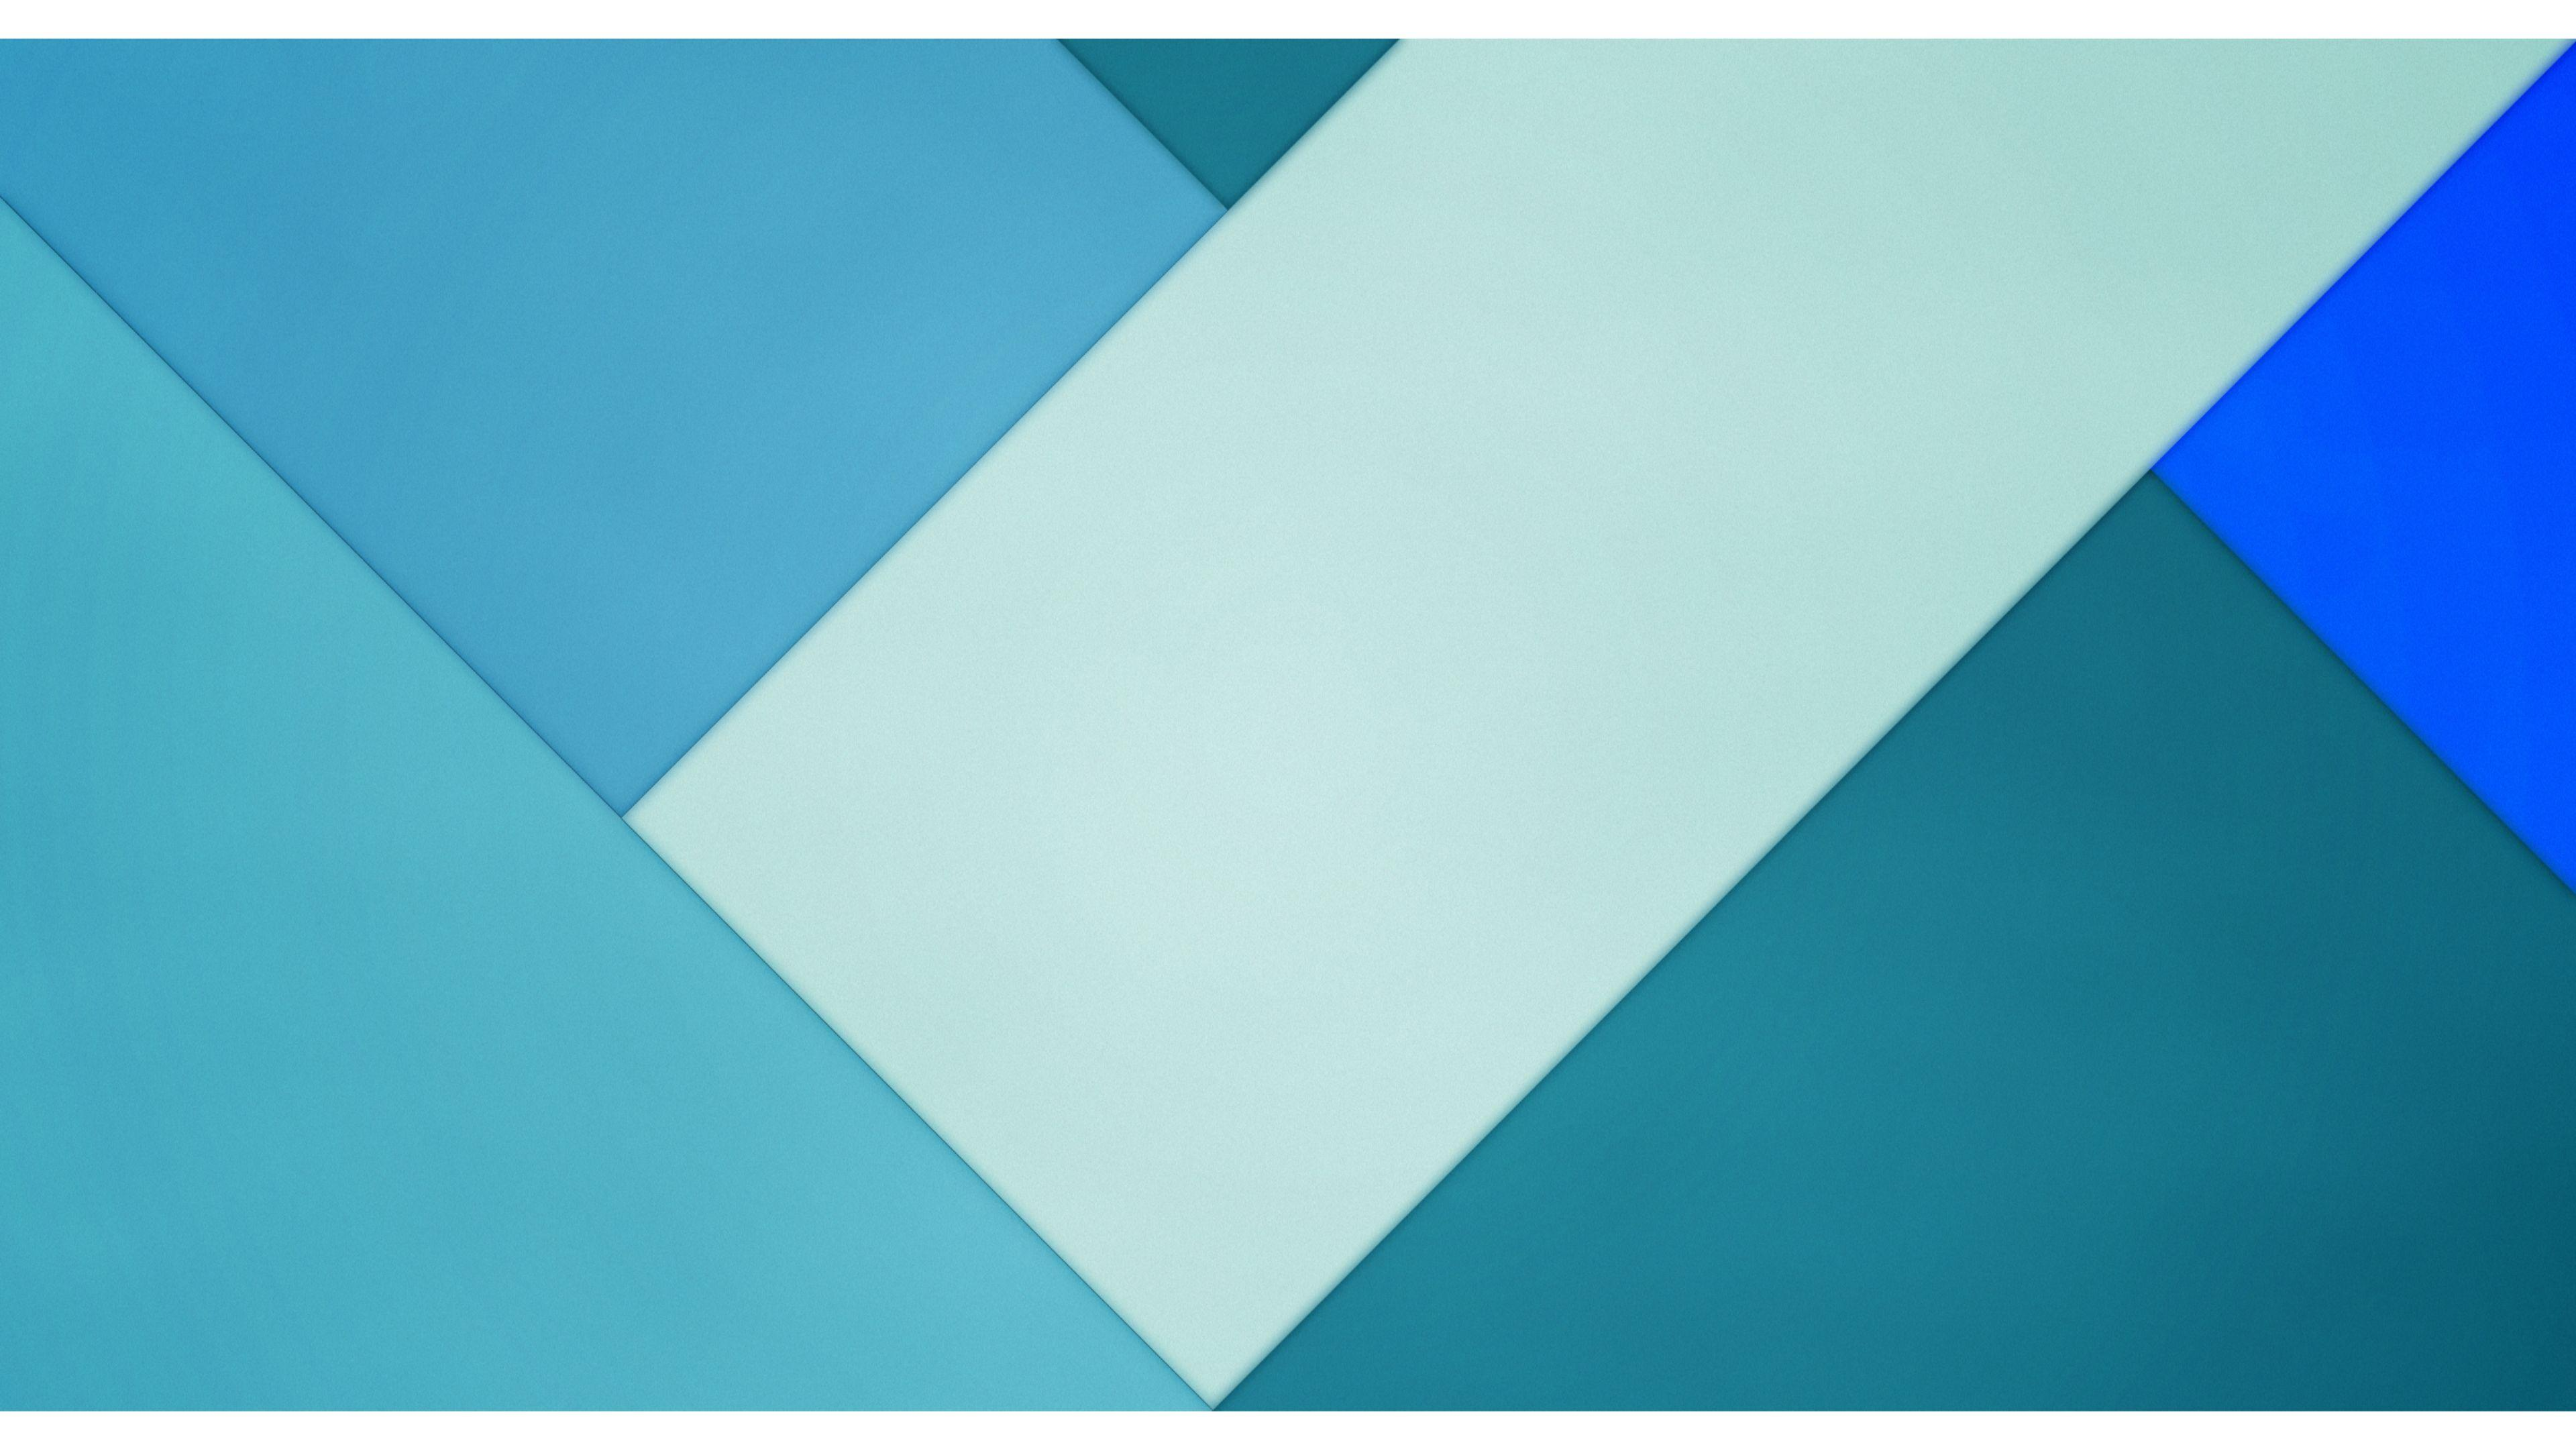 Abstract Square Wallpapers - Wallpaper Cave